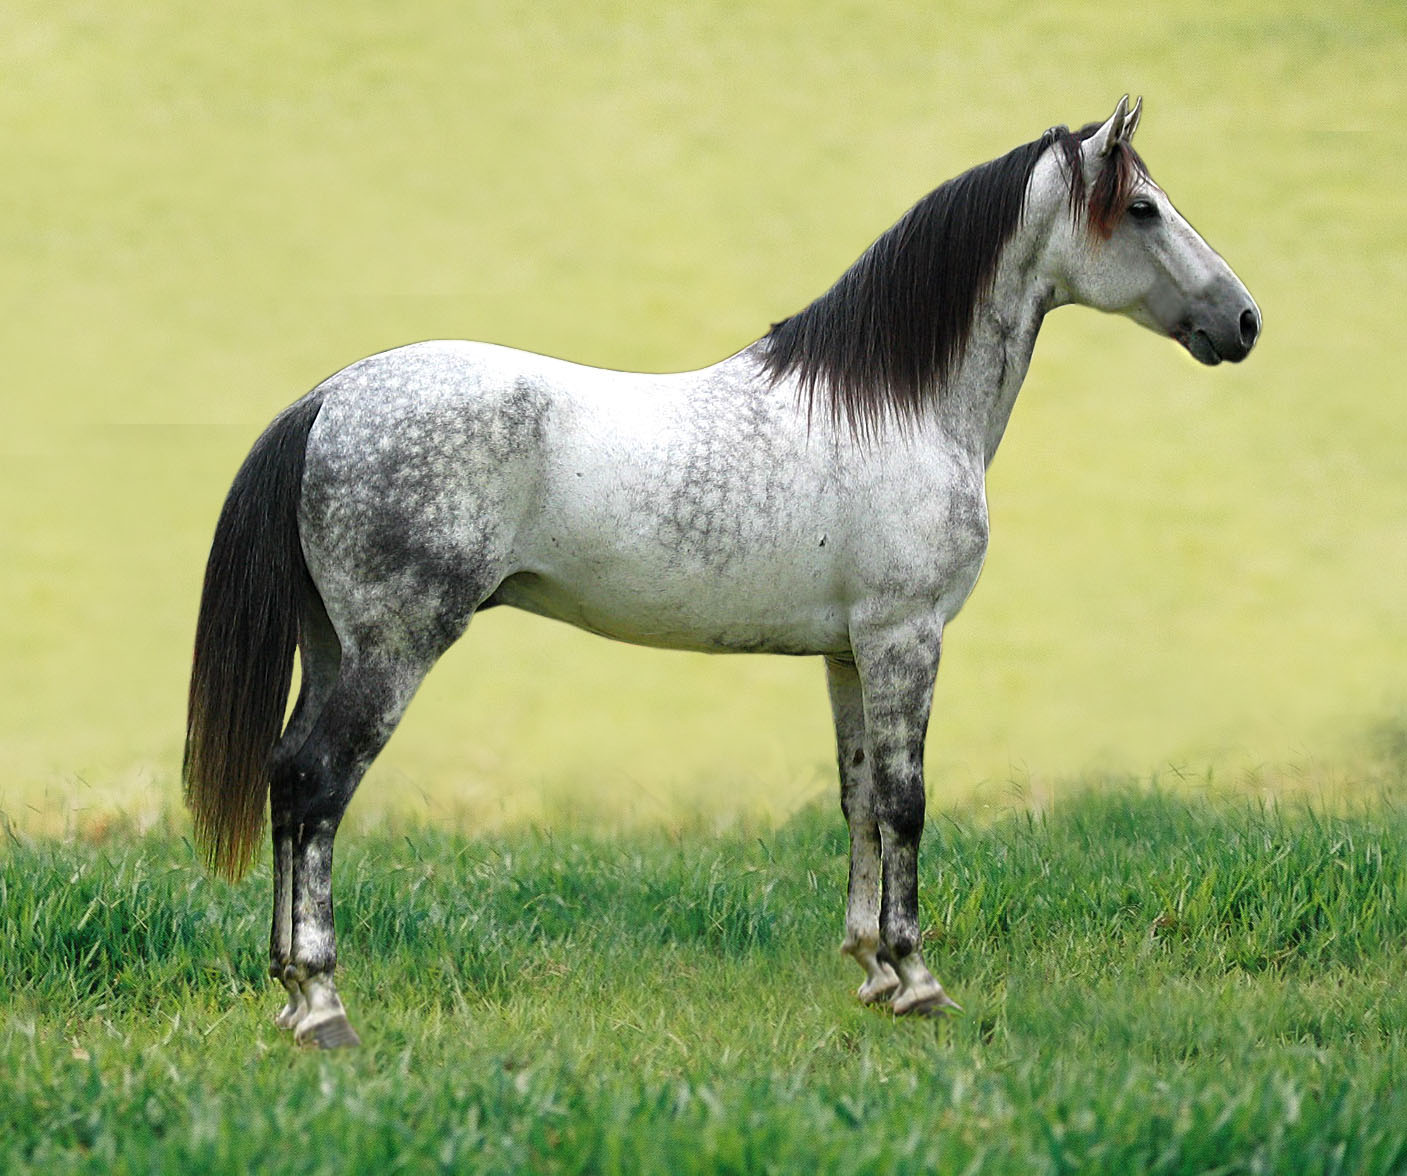 Cheval wikiwand - Image cheval a imprimer ...